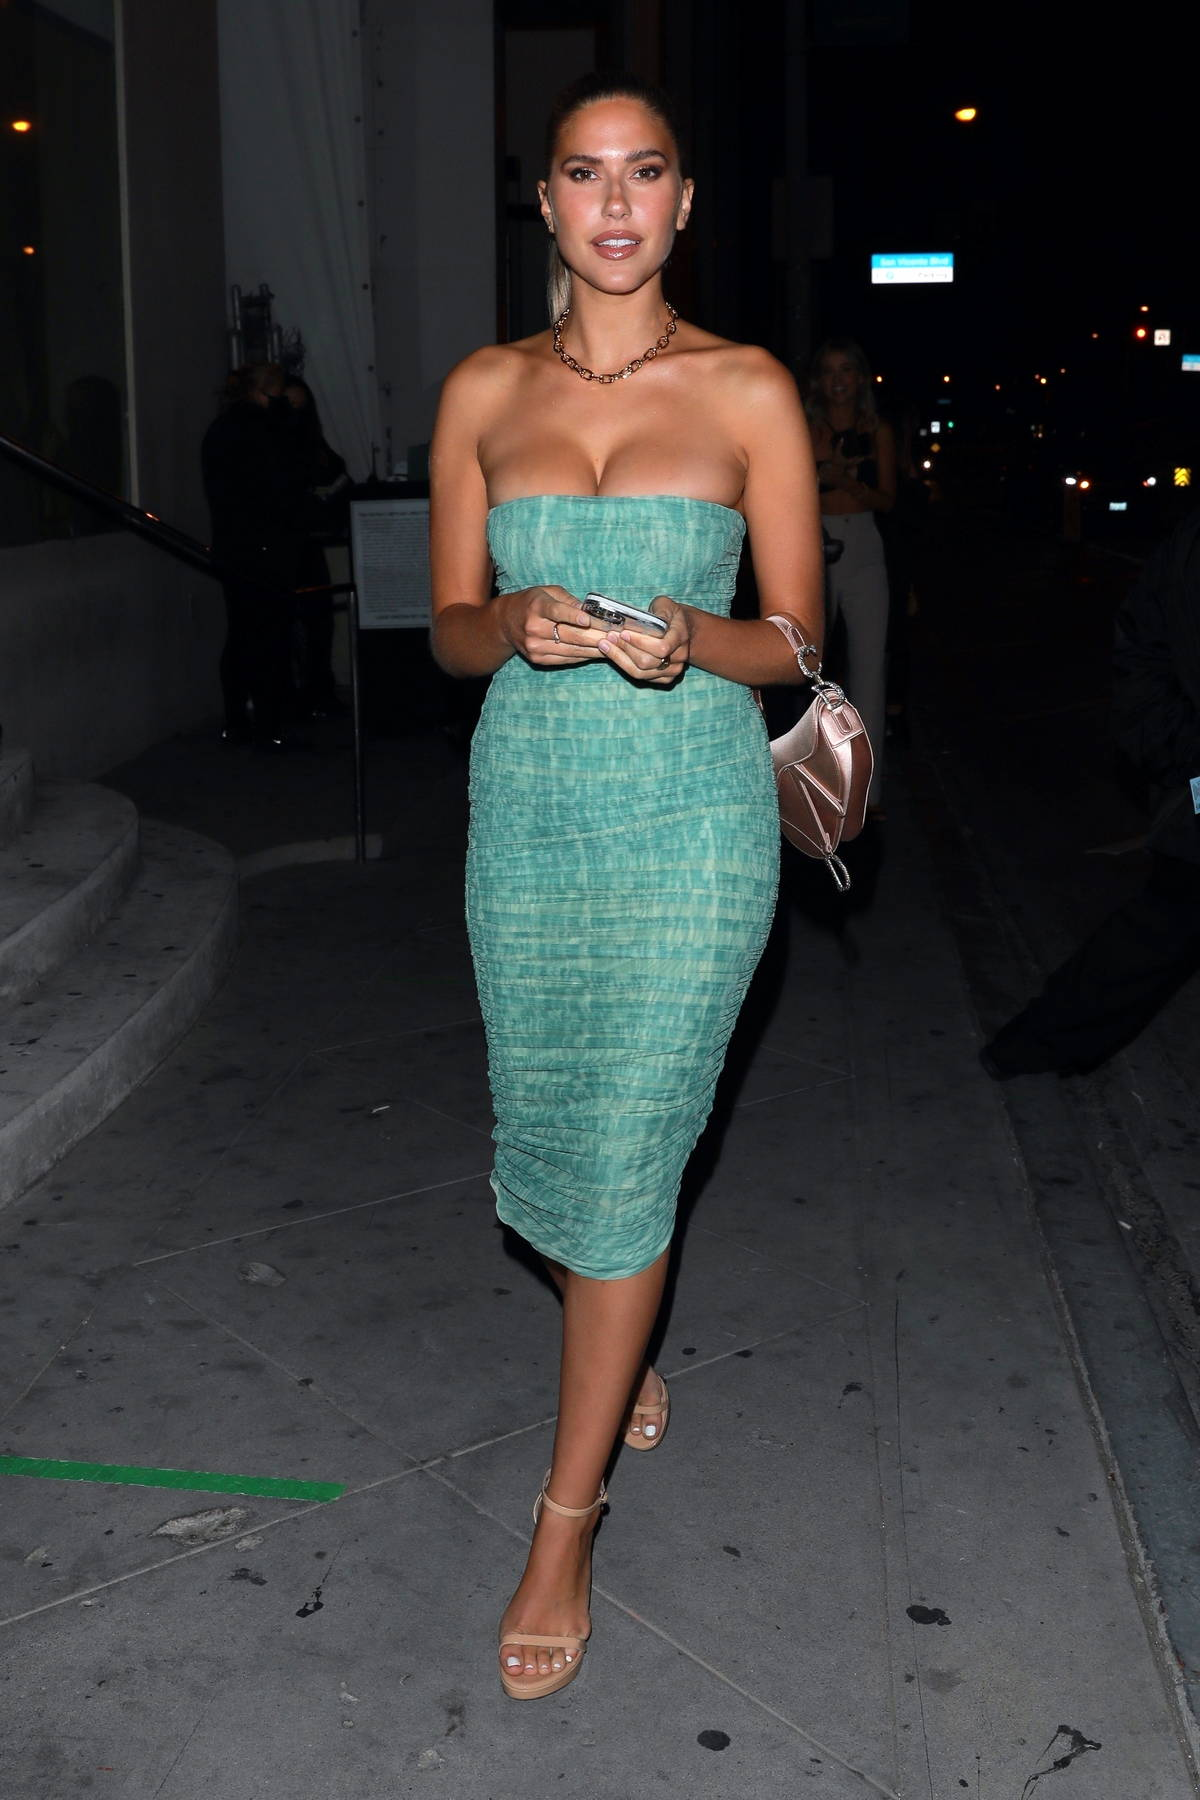 Kara Del Toro looks stunning in a form-fitting strapless green dress while out for dinner at Catch in West Hollywood, California